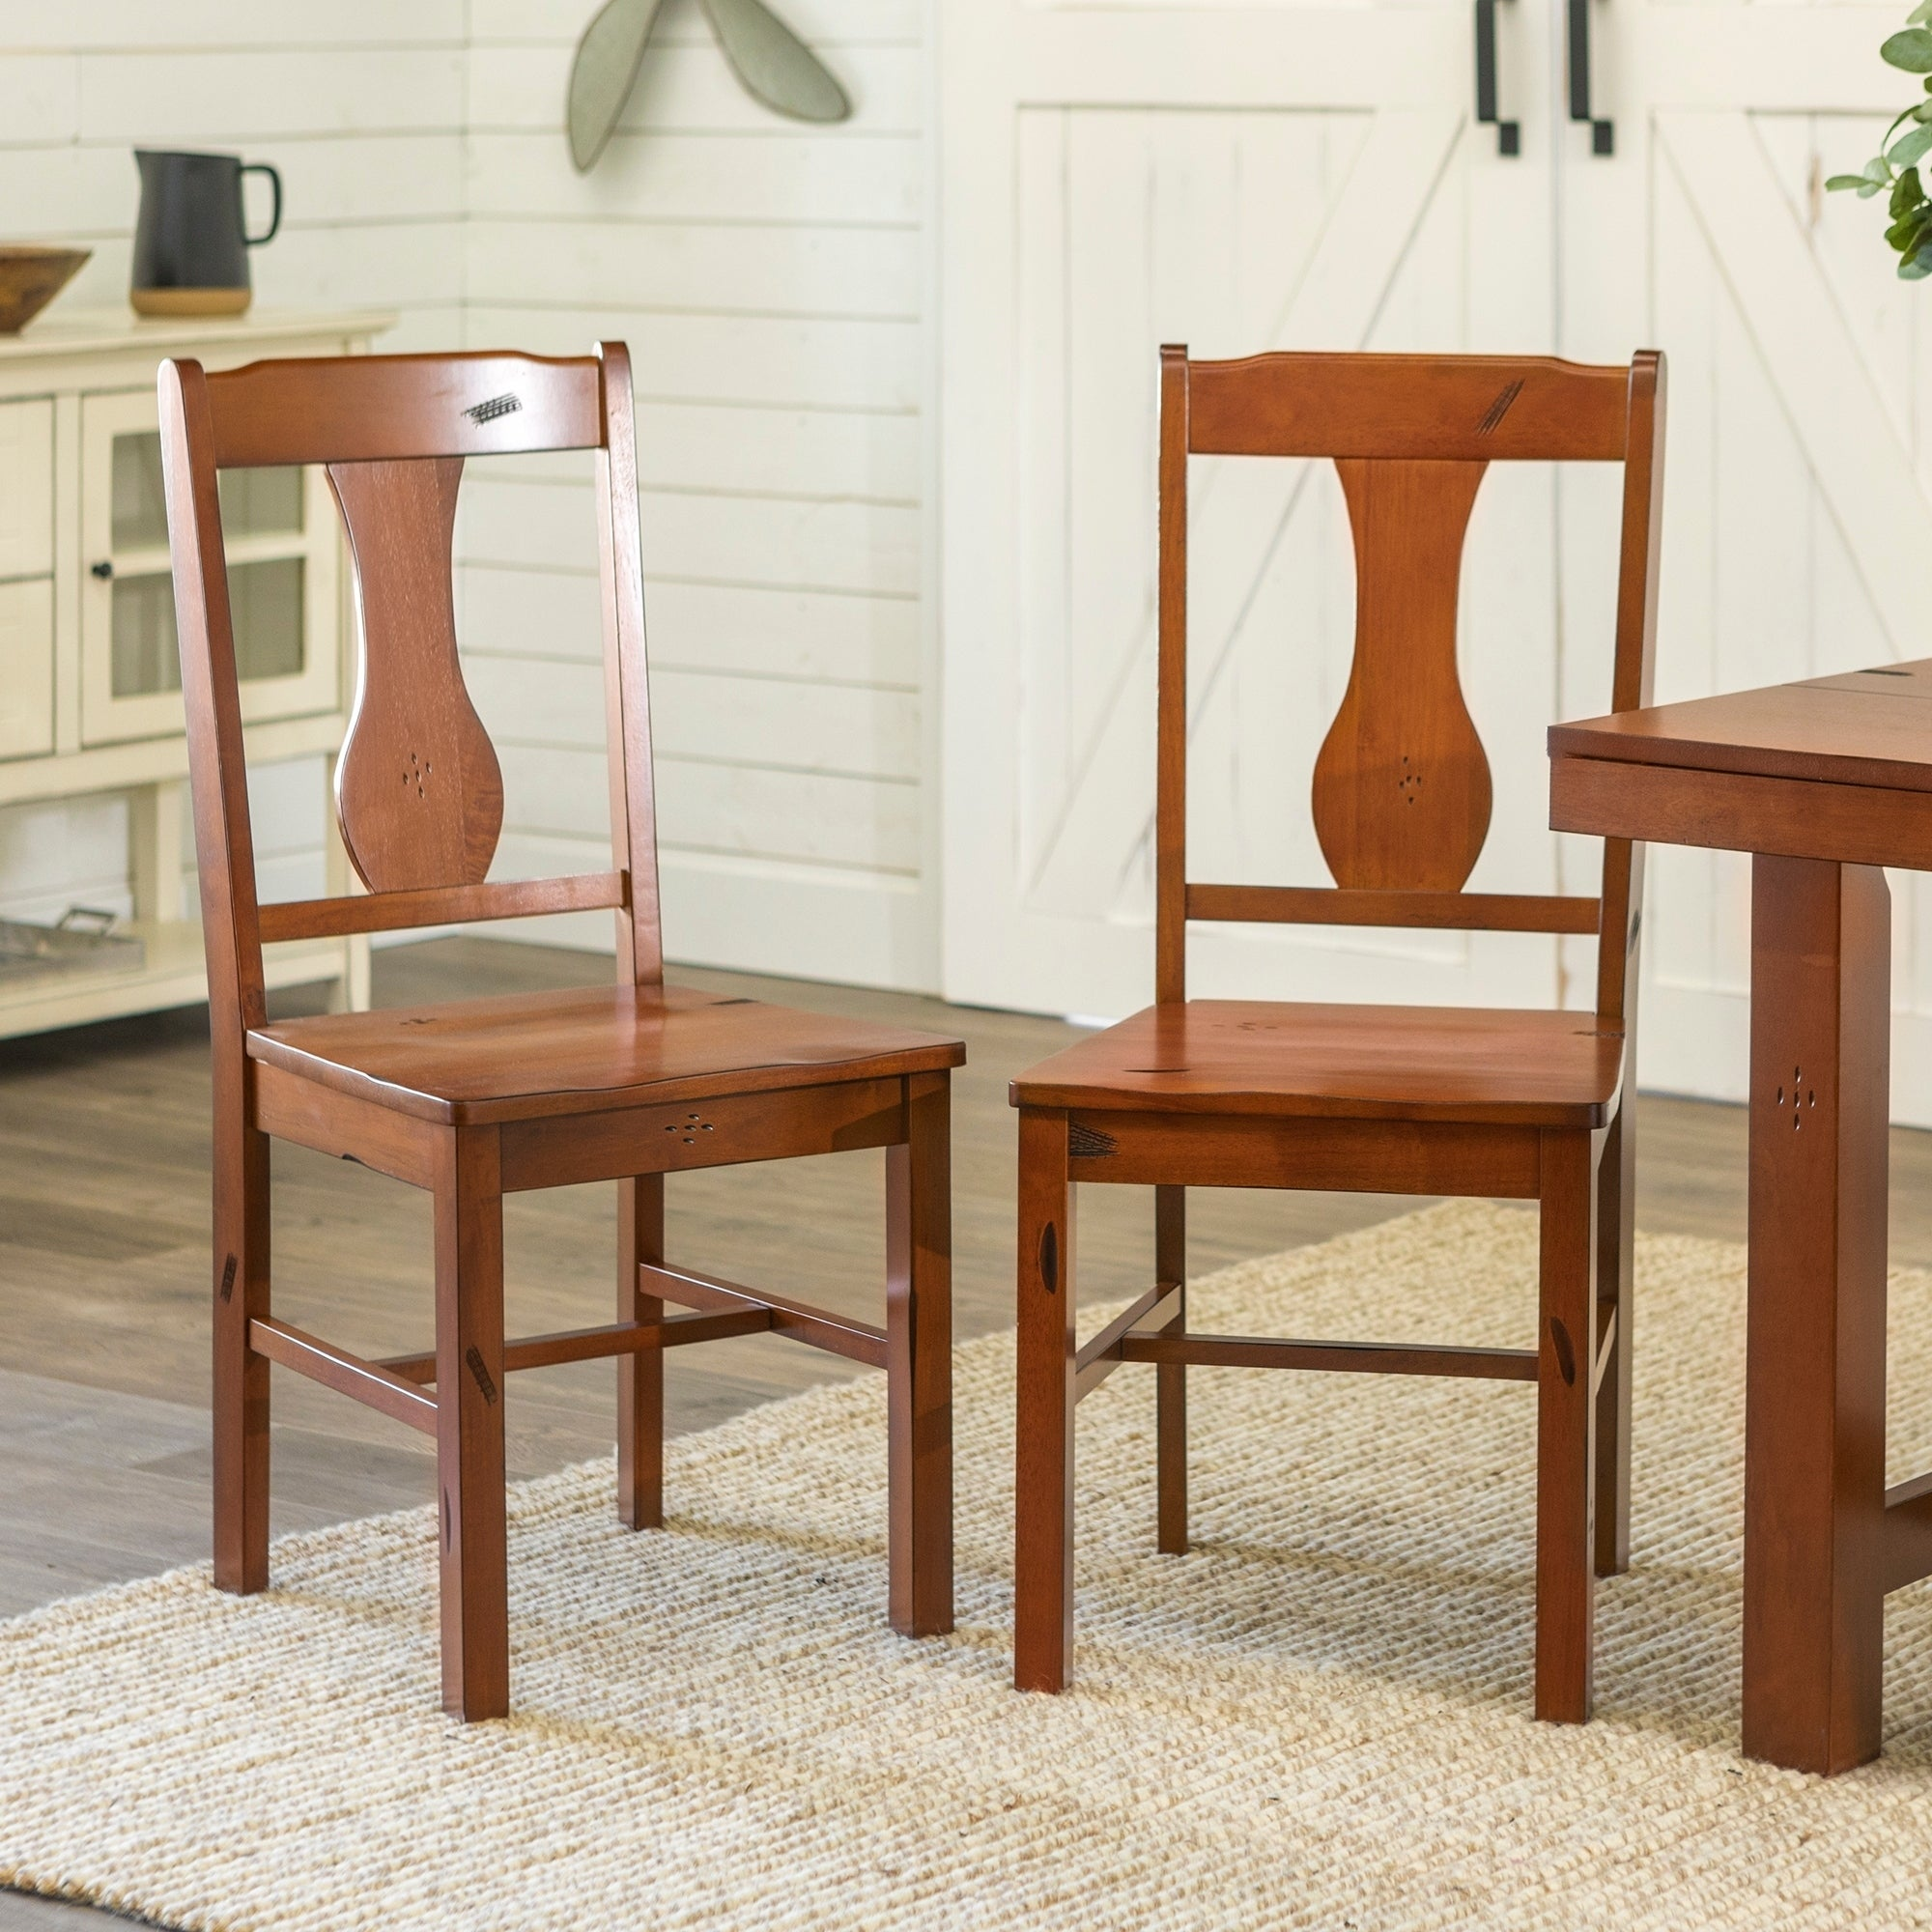 Rustic Dark Oak Wood Dining Chairs Set Of 2 N A